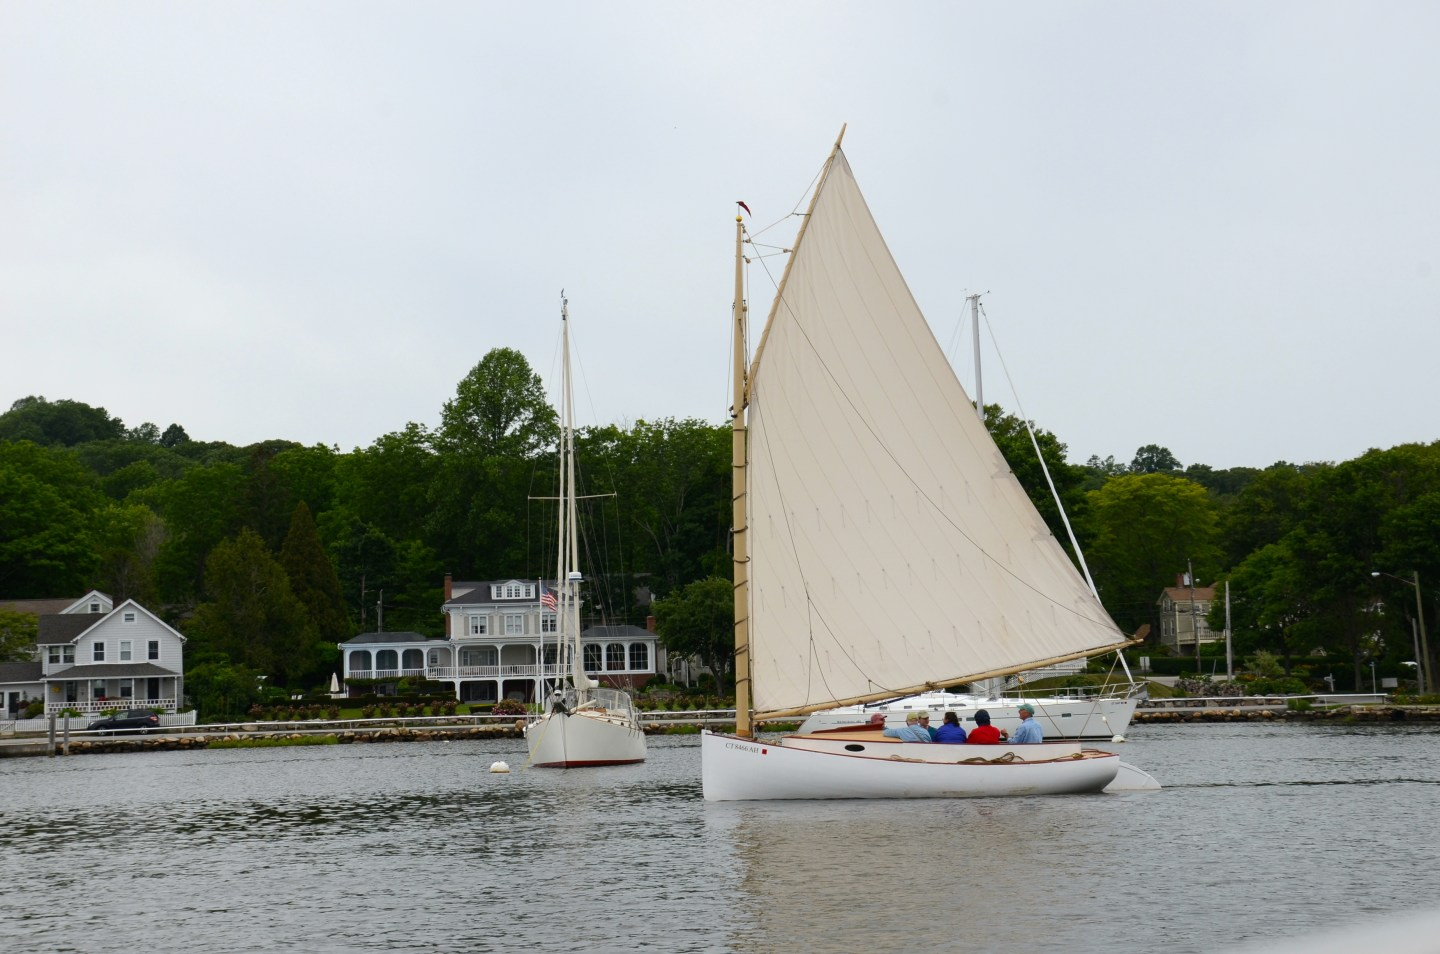 Charming towns in the tri state area, Mystic, CT,